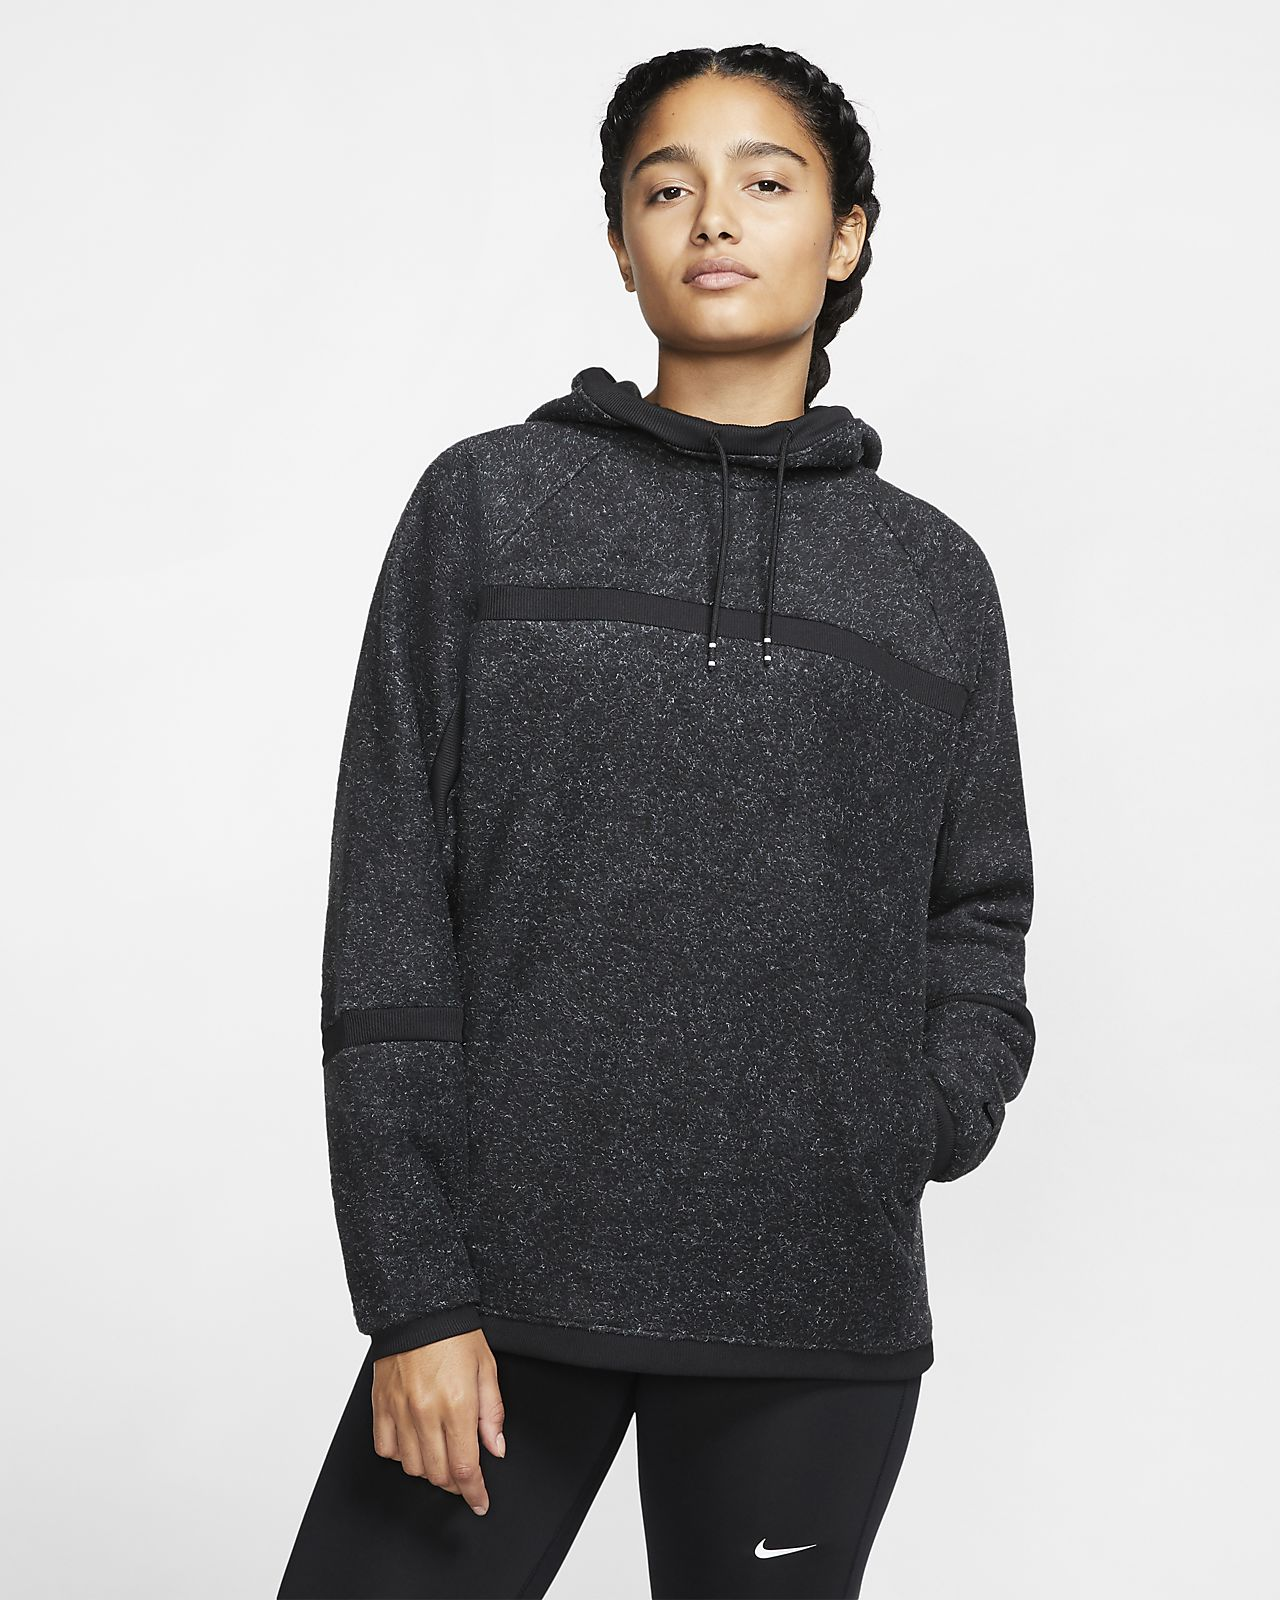 Nike Therma Logo Fleece Training Hoodie Available on Black